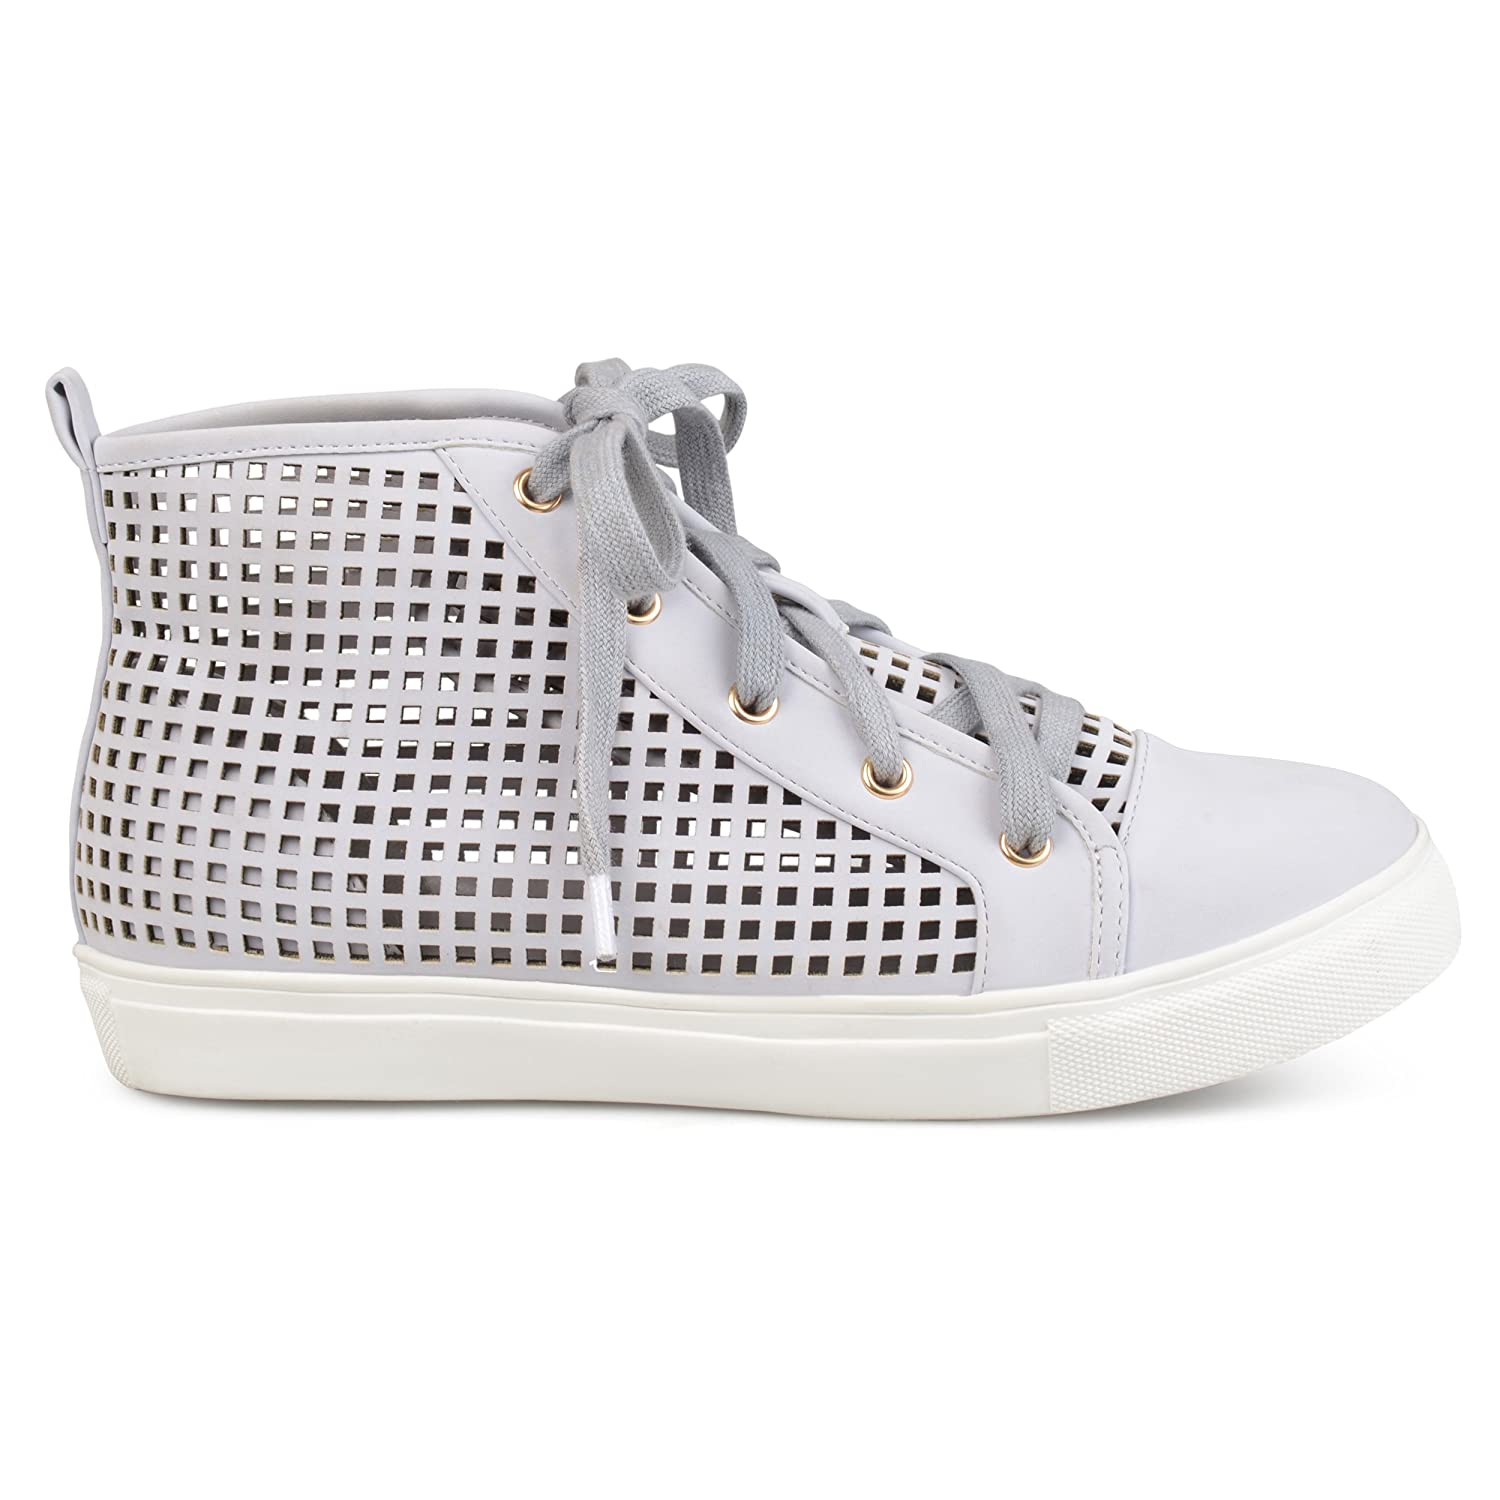 Brinley Co Womens Faux Leather High-Top Lace-up Laser-Cut Sneakers B073RRY9XM 11 B(M) US|Grey